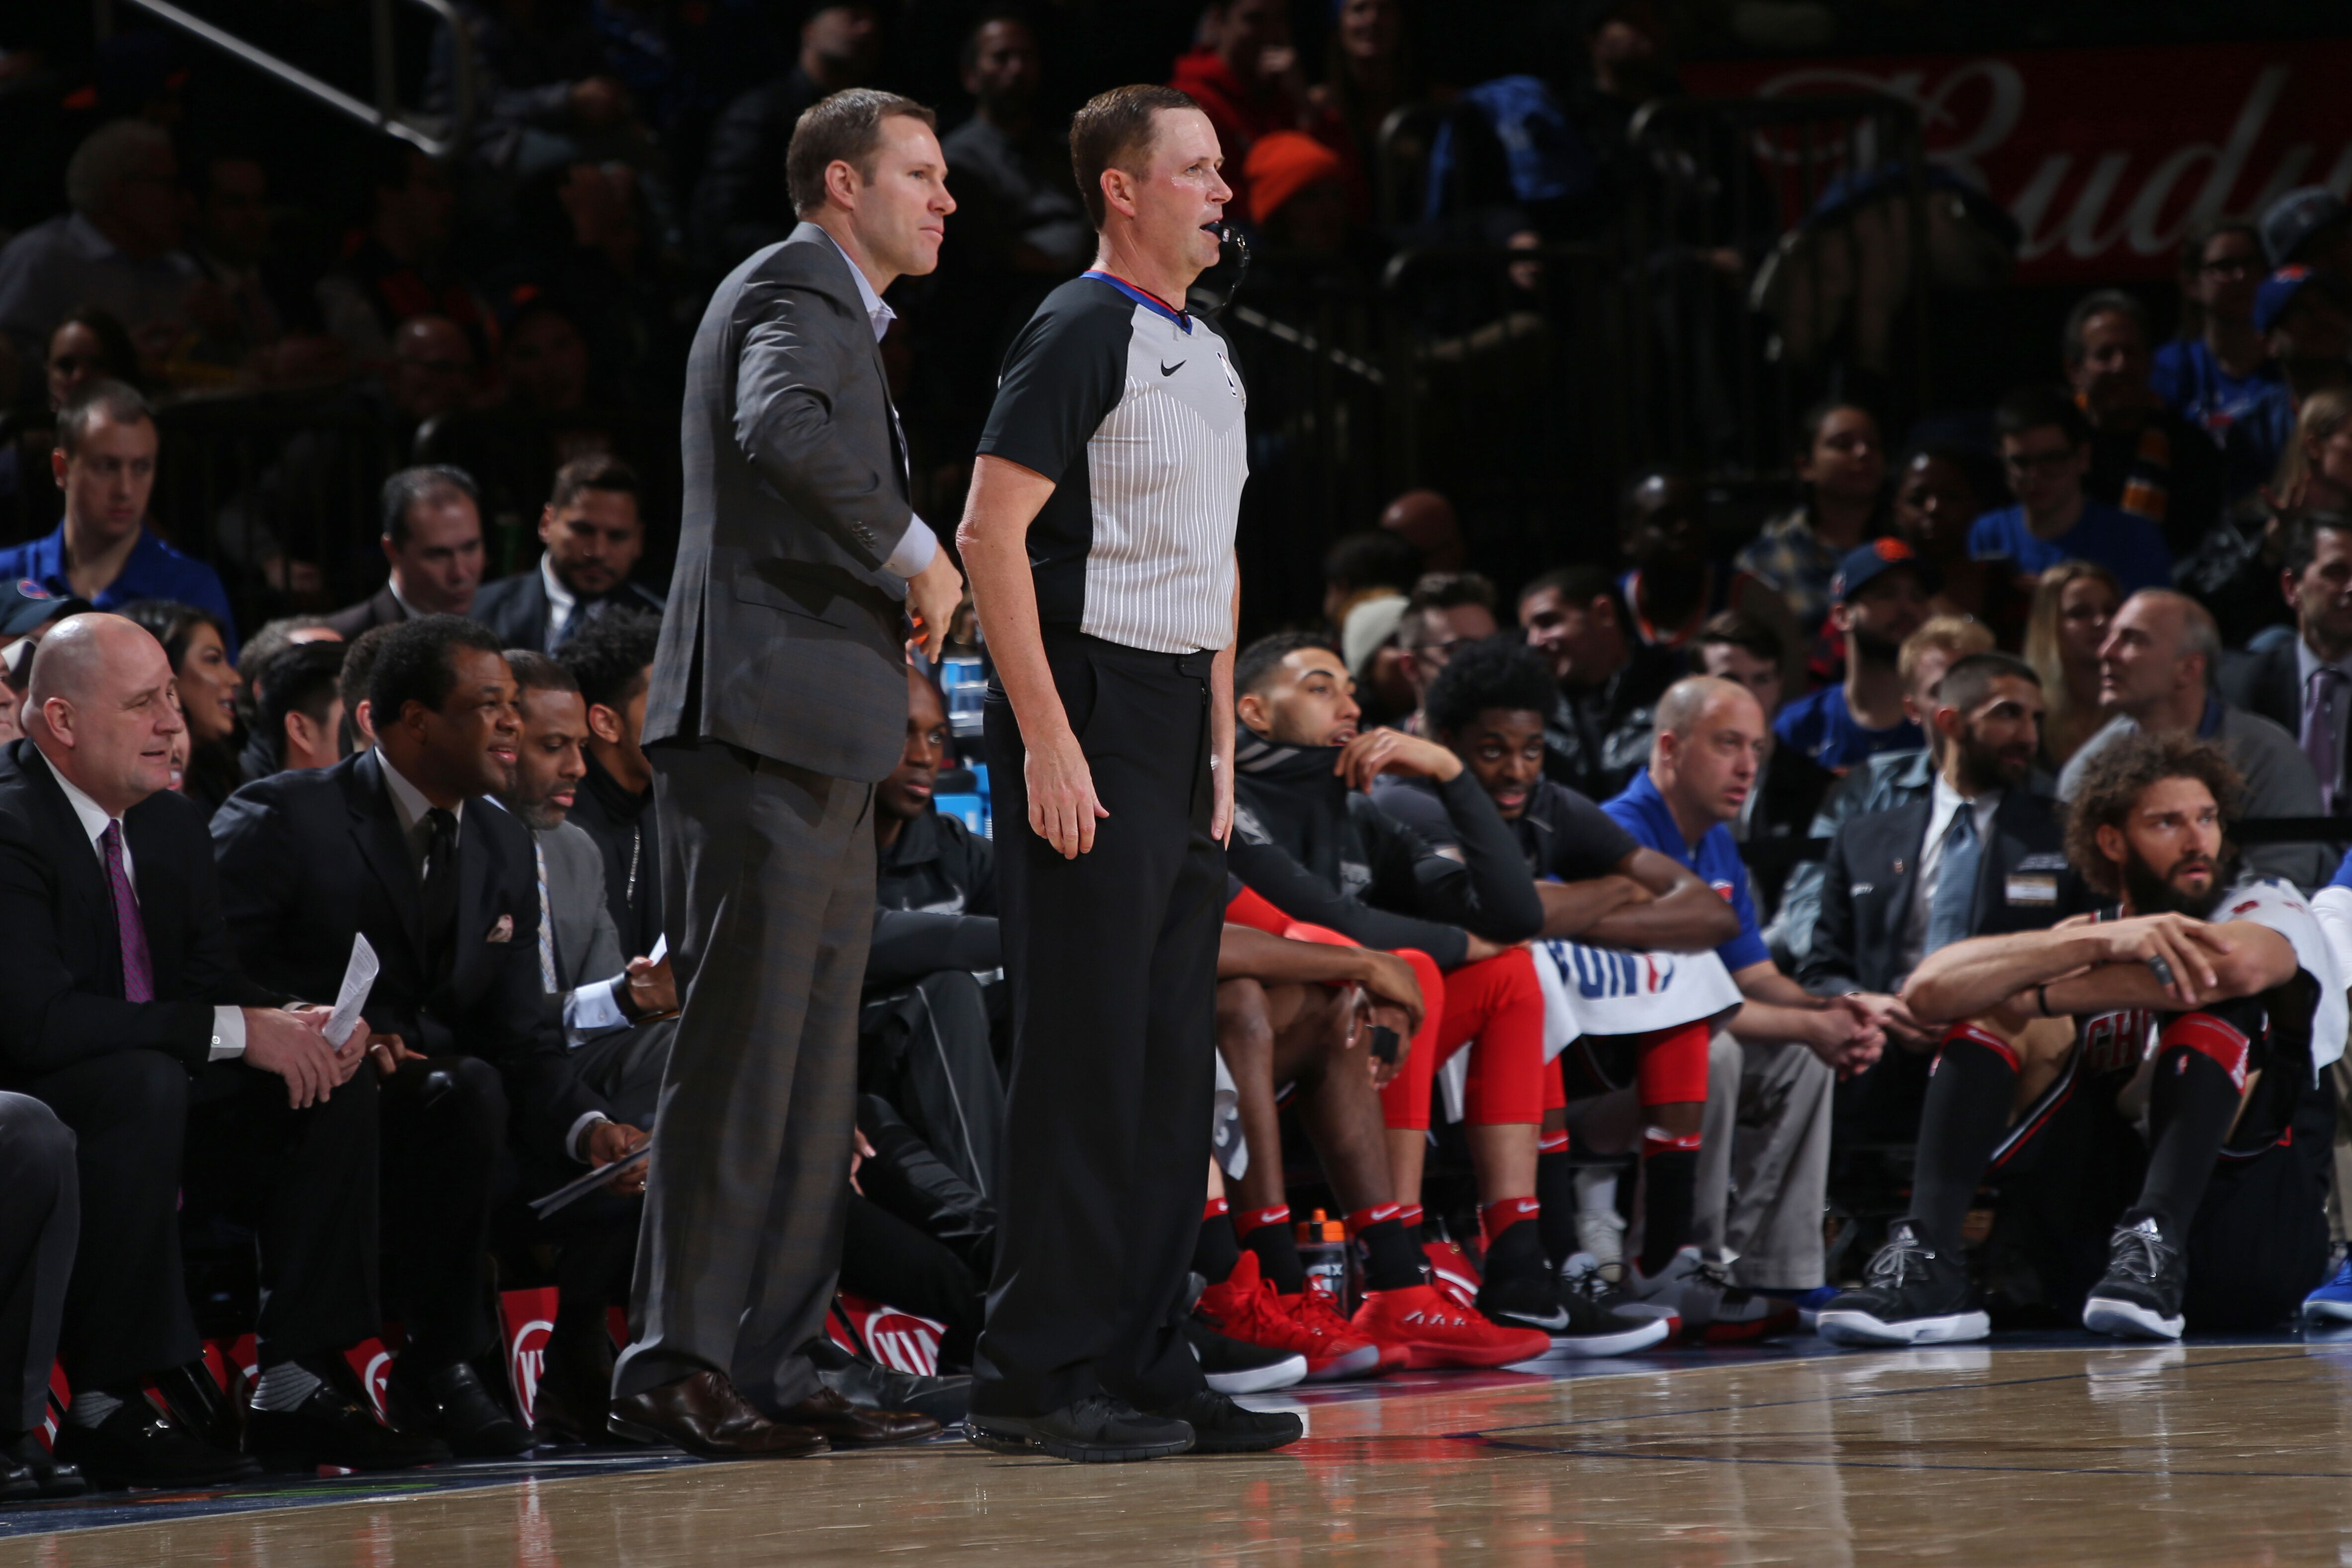 NEW YORK, NY - JANUARY 10: Referee, Matt Boland and Fred Hoiberg of the Chicago Bulls look on during the game against the New York Knicks on January 10, 2018 at Madison Square Garden in New York City, New York. NOTE TO USER: User expressly acknowledges and agrees that, by downloading and or using this photograph, User is consenting to the terms and conditions of the Getty Images License Agreement. Mandatory Copyright Notice: Copyright 2018 NBAE (Photo by Steven Freeman/NBAE via Getty Images)